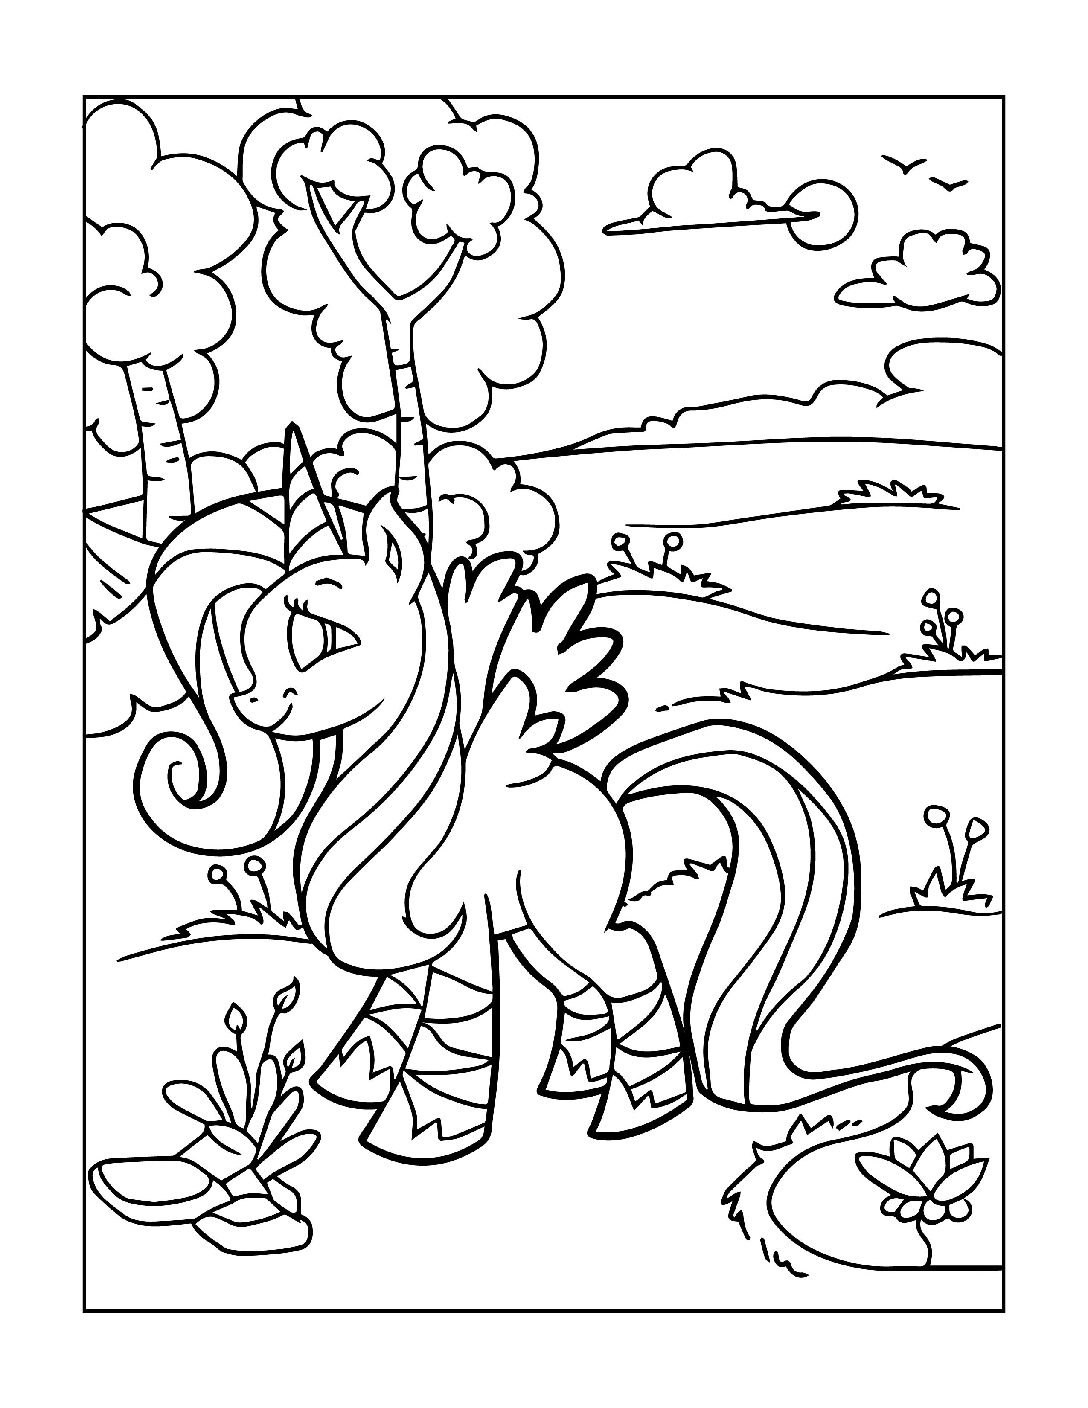 Coloring-Pages-Unicorns-12-pdf Free Printable Unicorn Colouring Pages